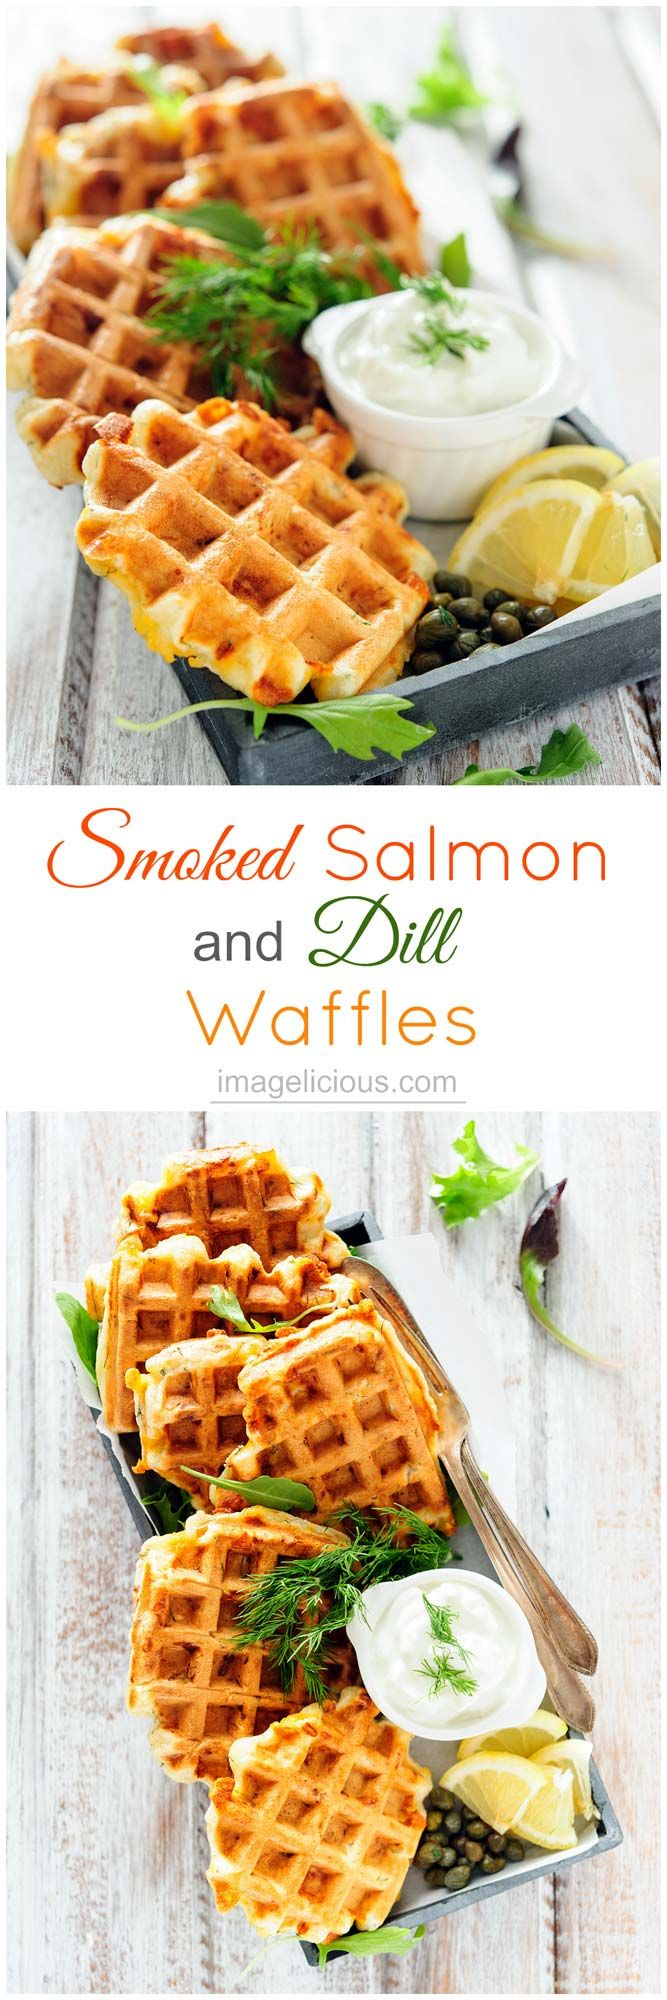 Smoked Salmon and Dill Waffles - perfect savoury breakfast or lunch. Elegant and delicious for a special occasion